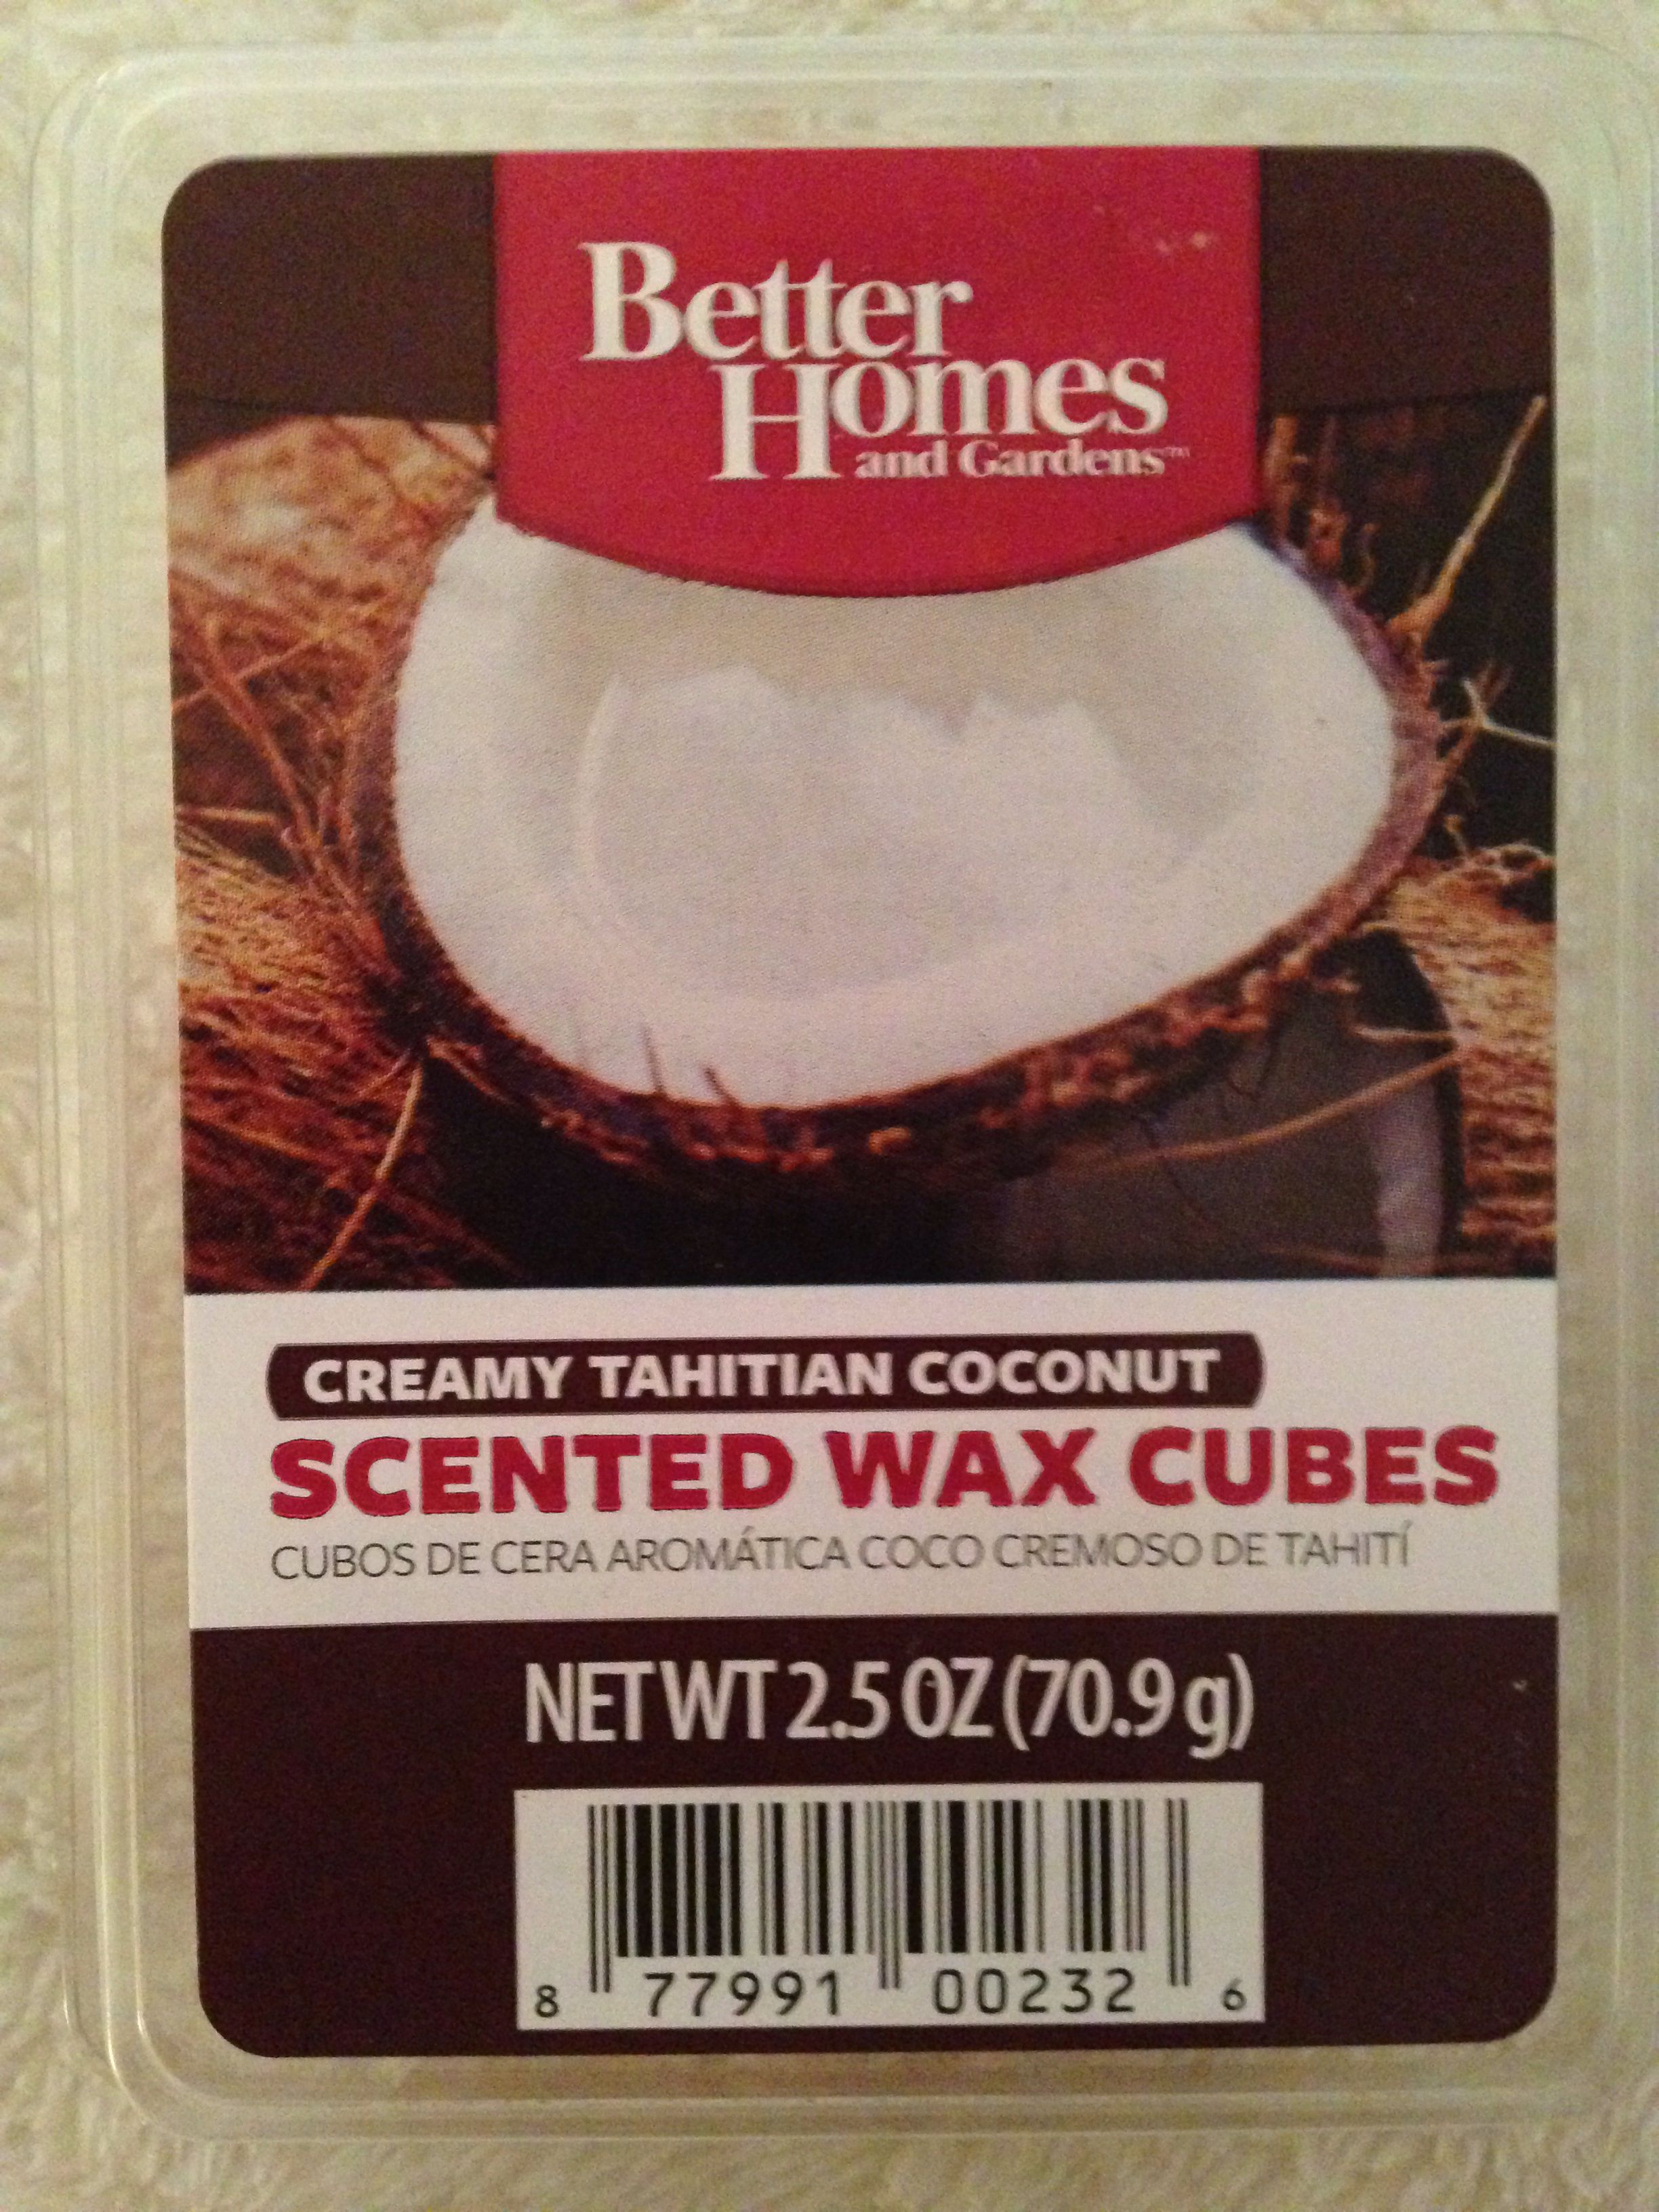 672ea8f73bed39f6694d265f6db1949f - Better Homes And Gardens Wax Cubes Scents List